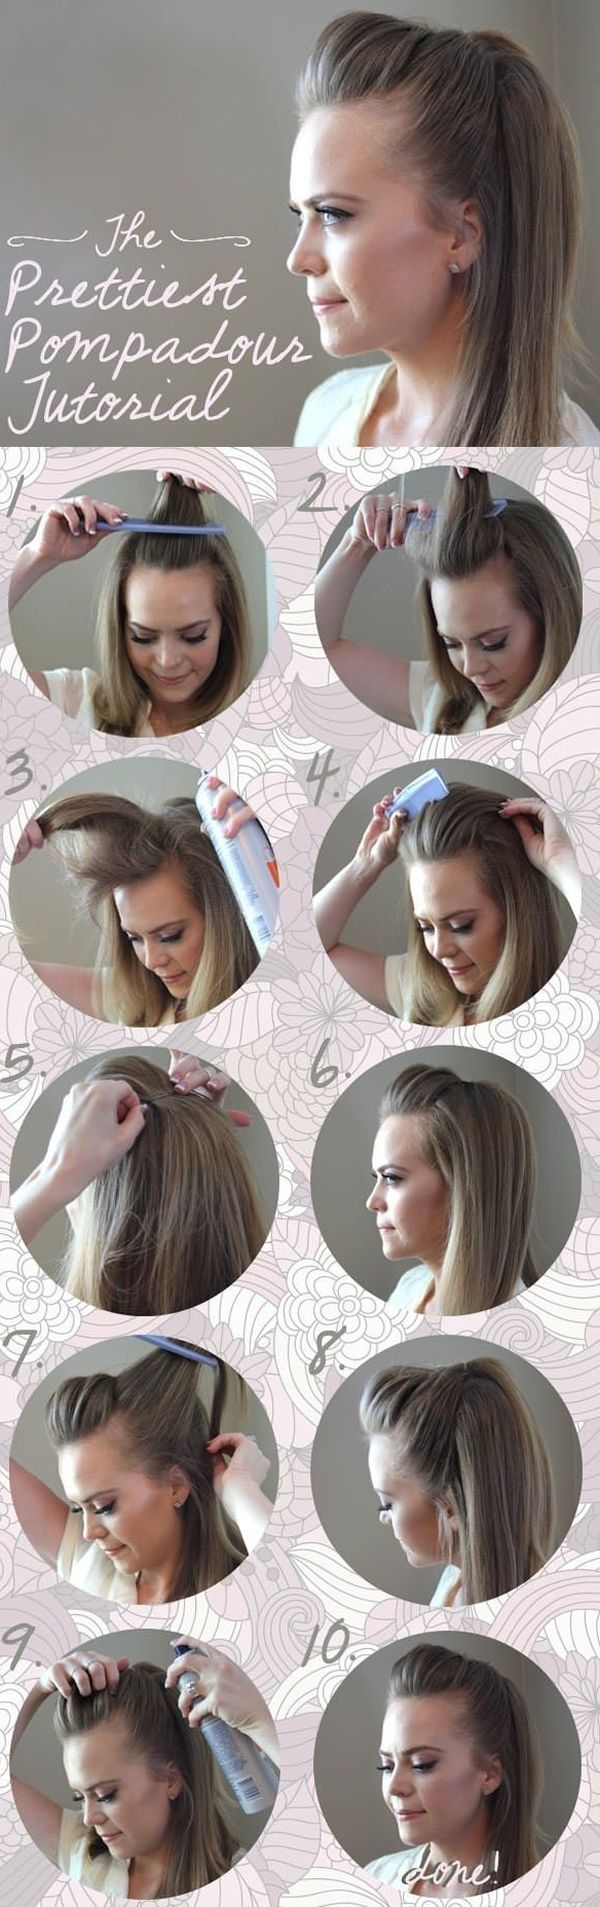 fiveminute hairstyles for school stylequick easy diy